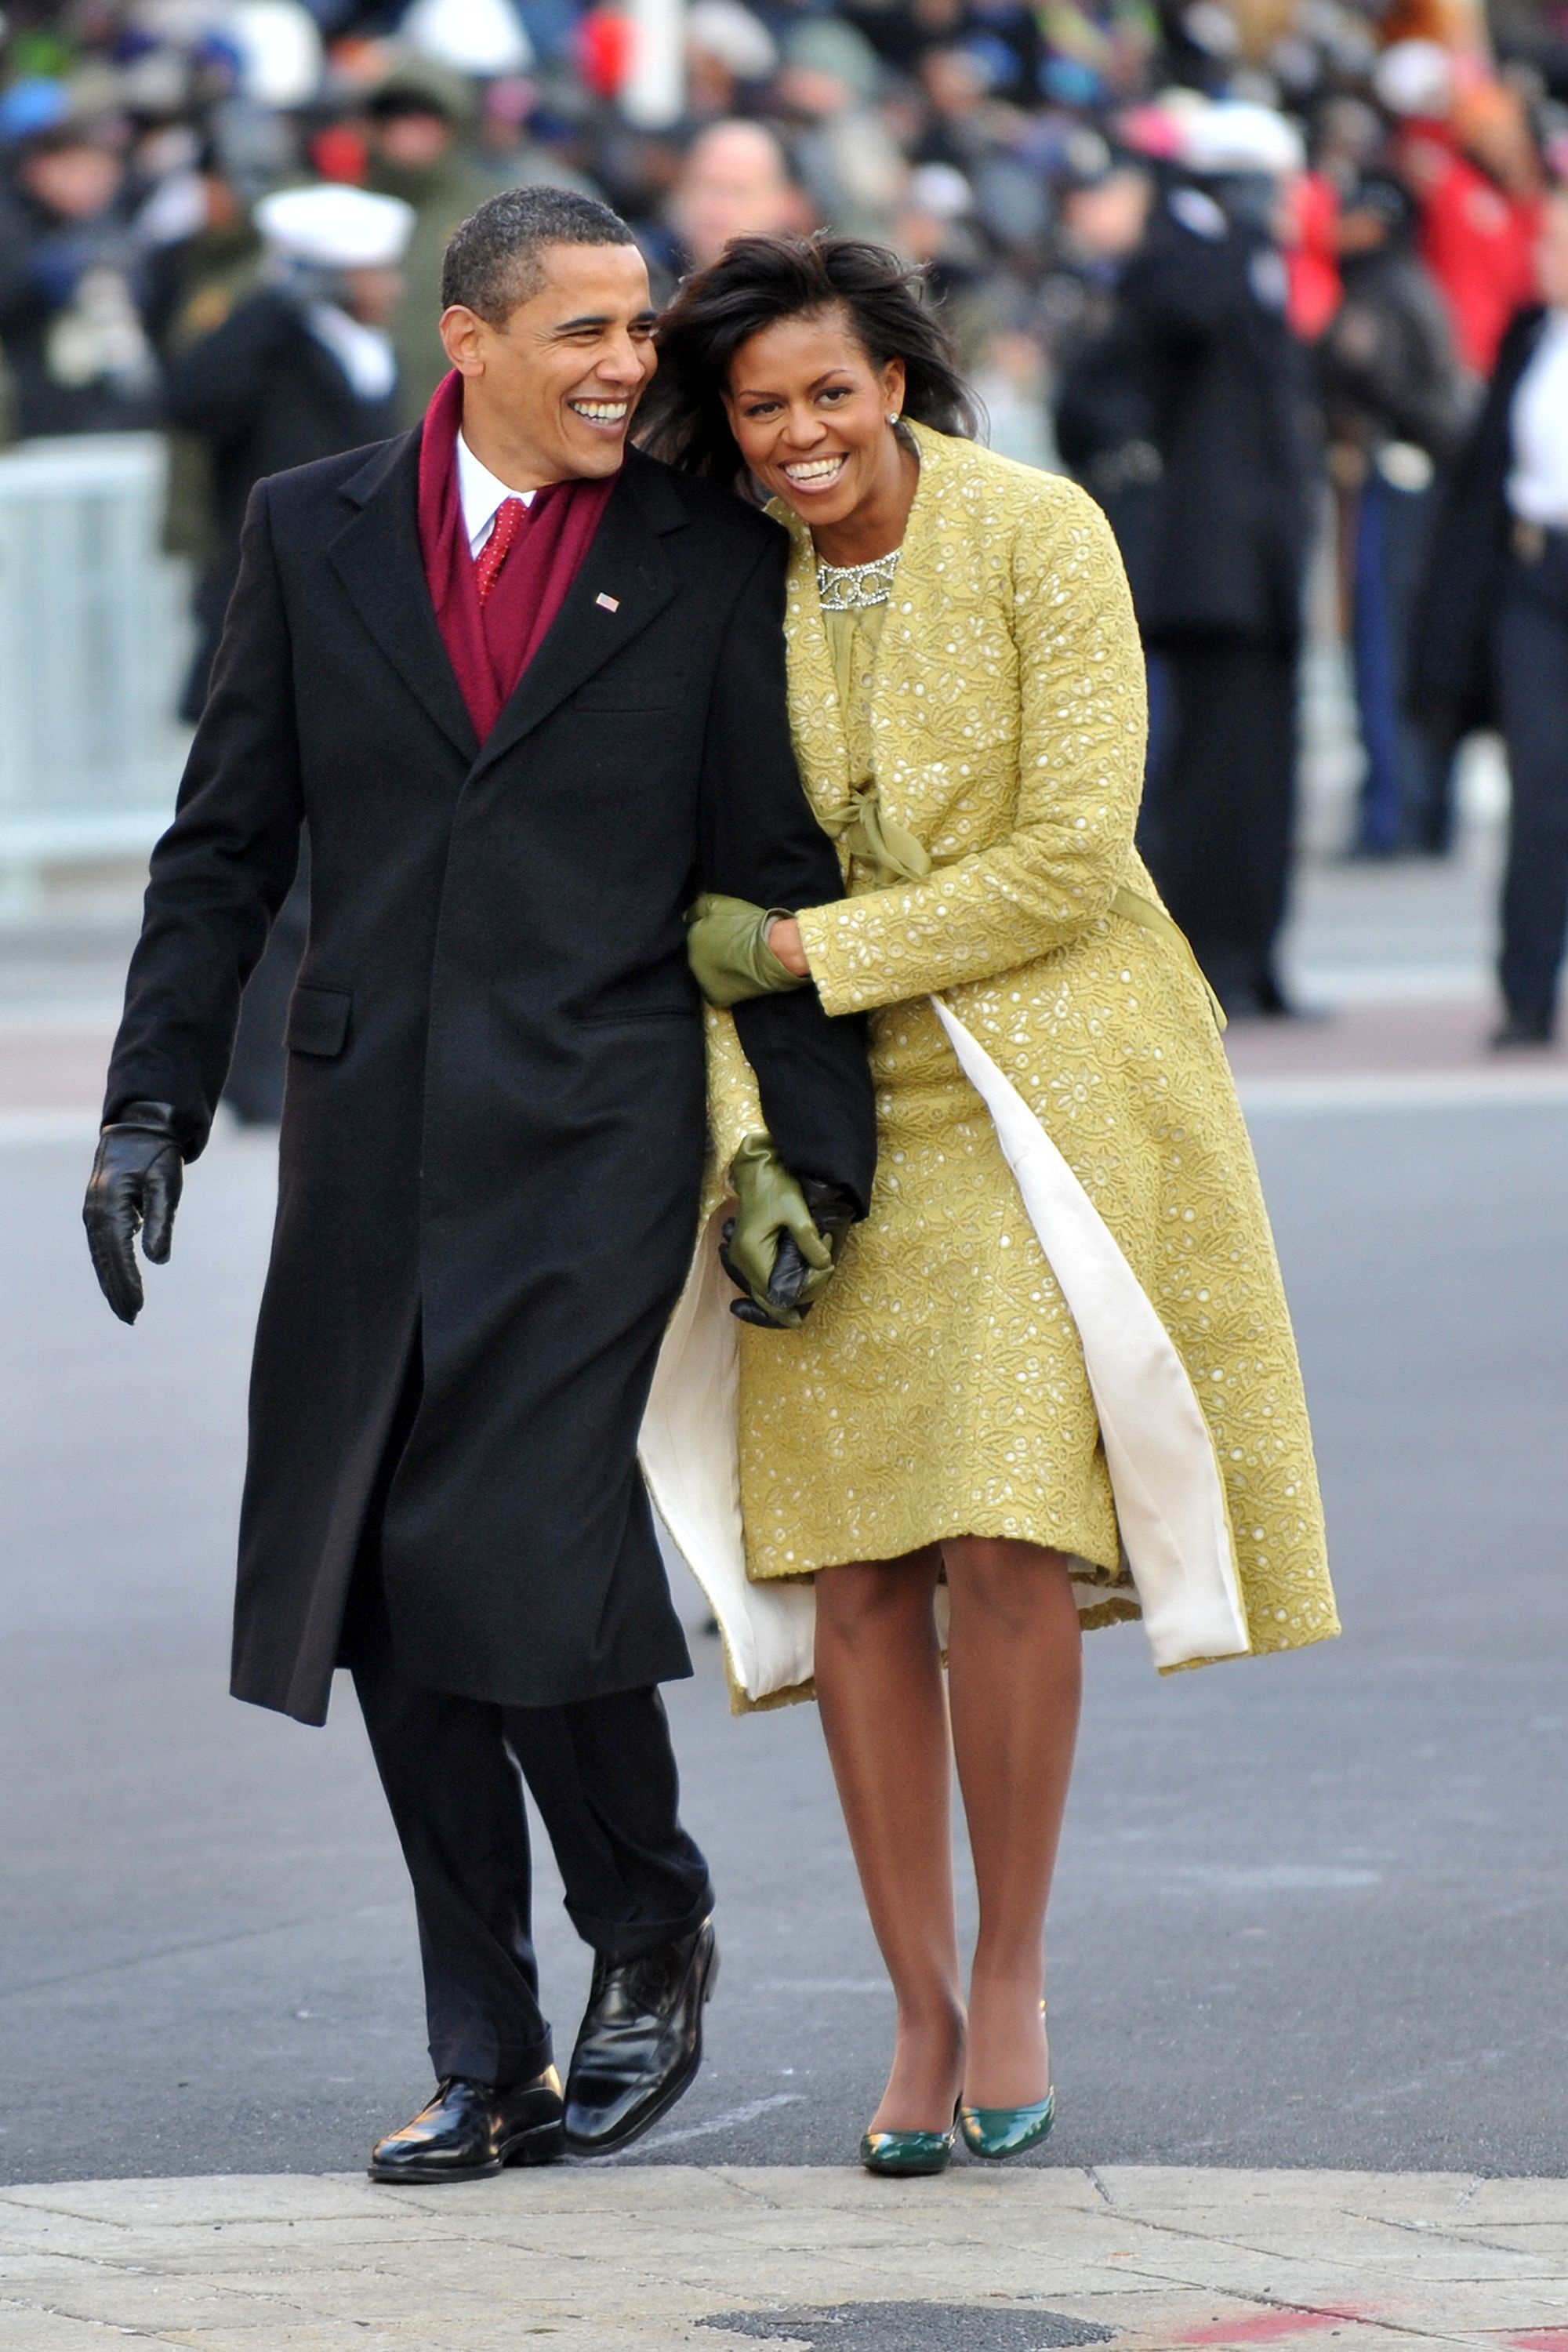 http://www.harpersbazaar.com/culture/features/g6295/barack-and-michelle-obama-anniversary/